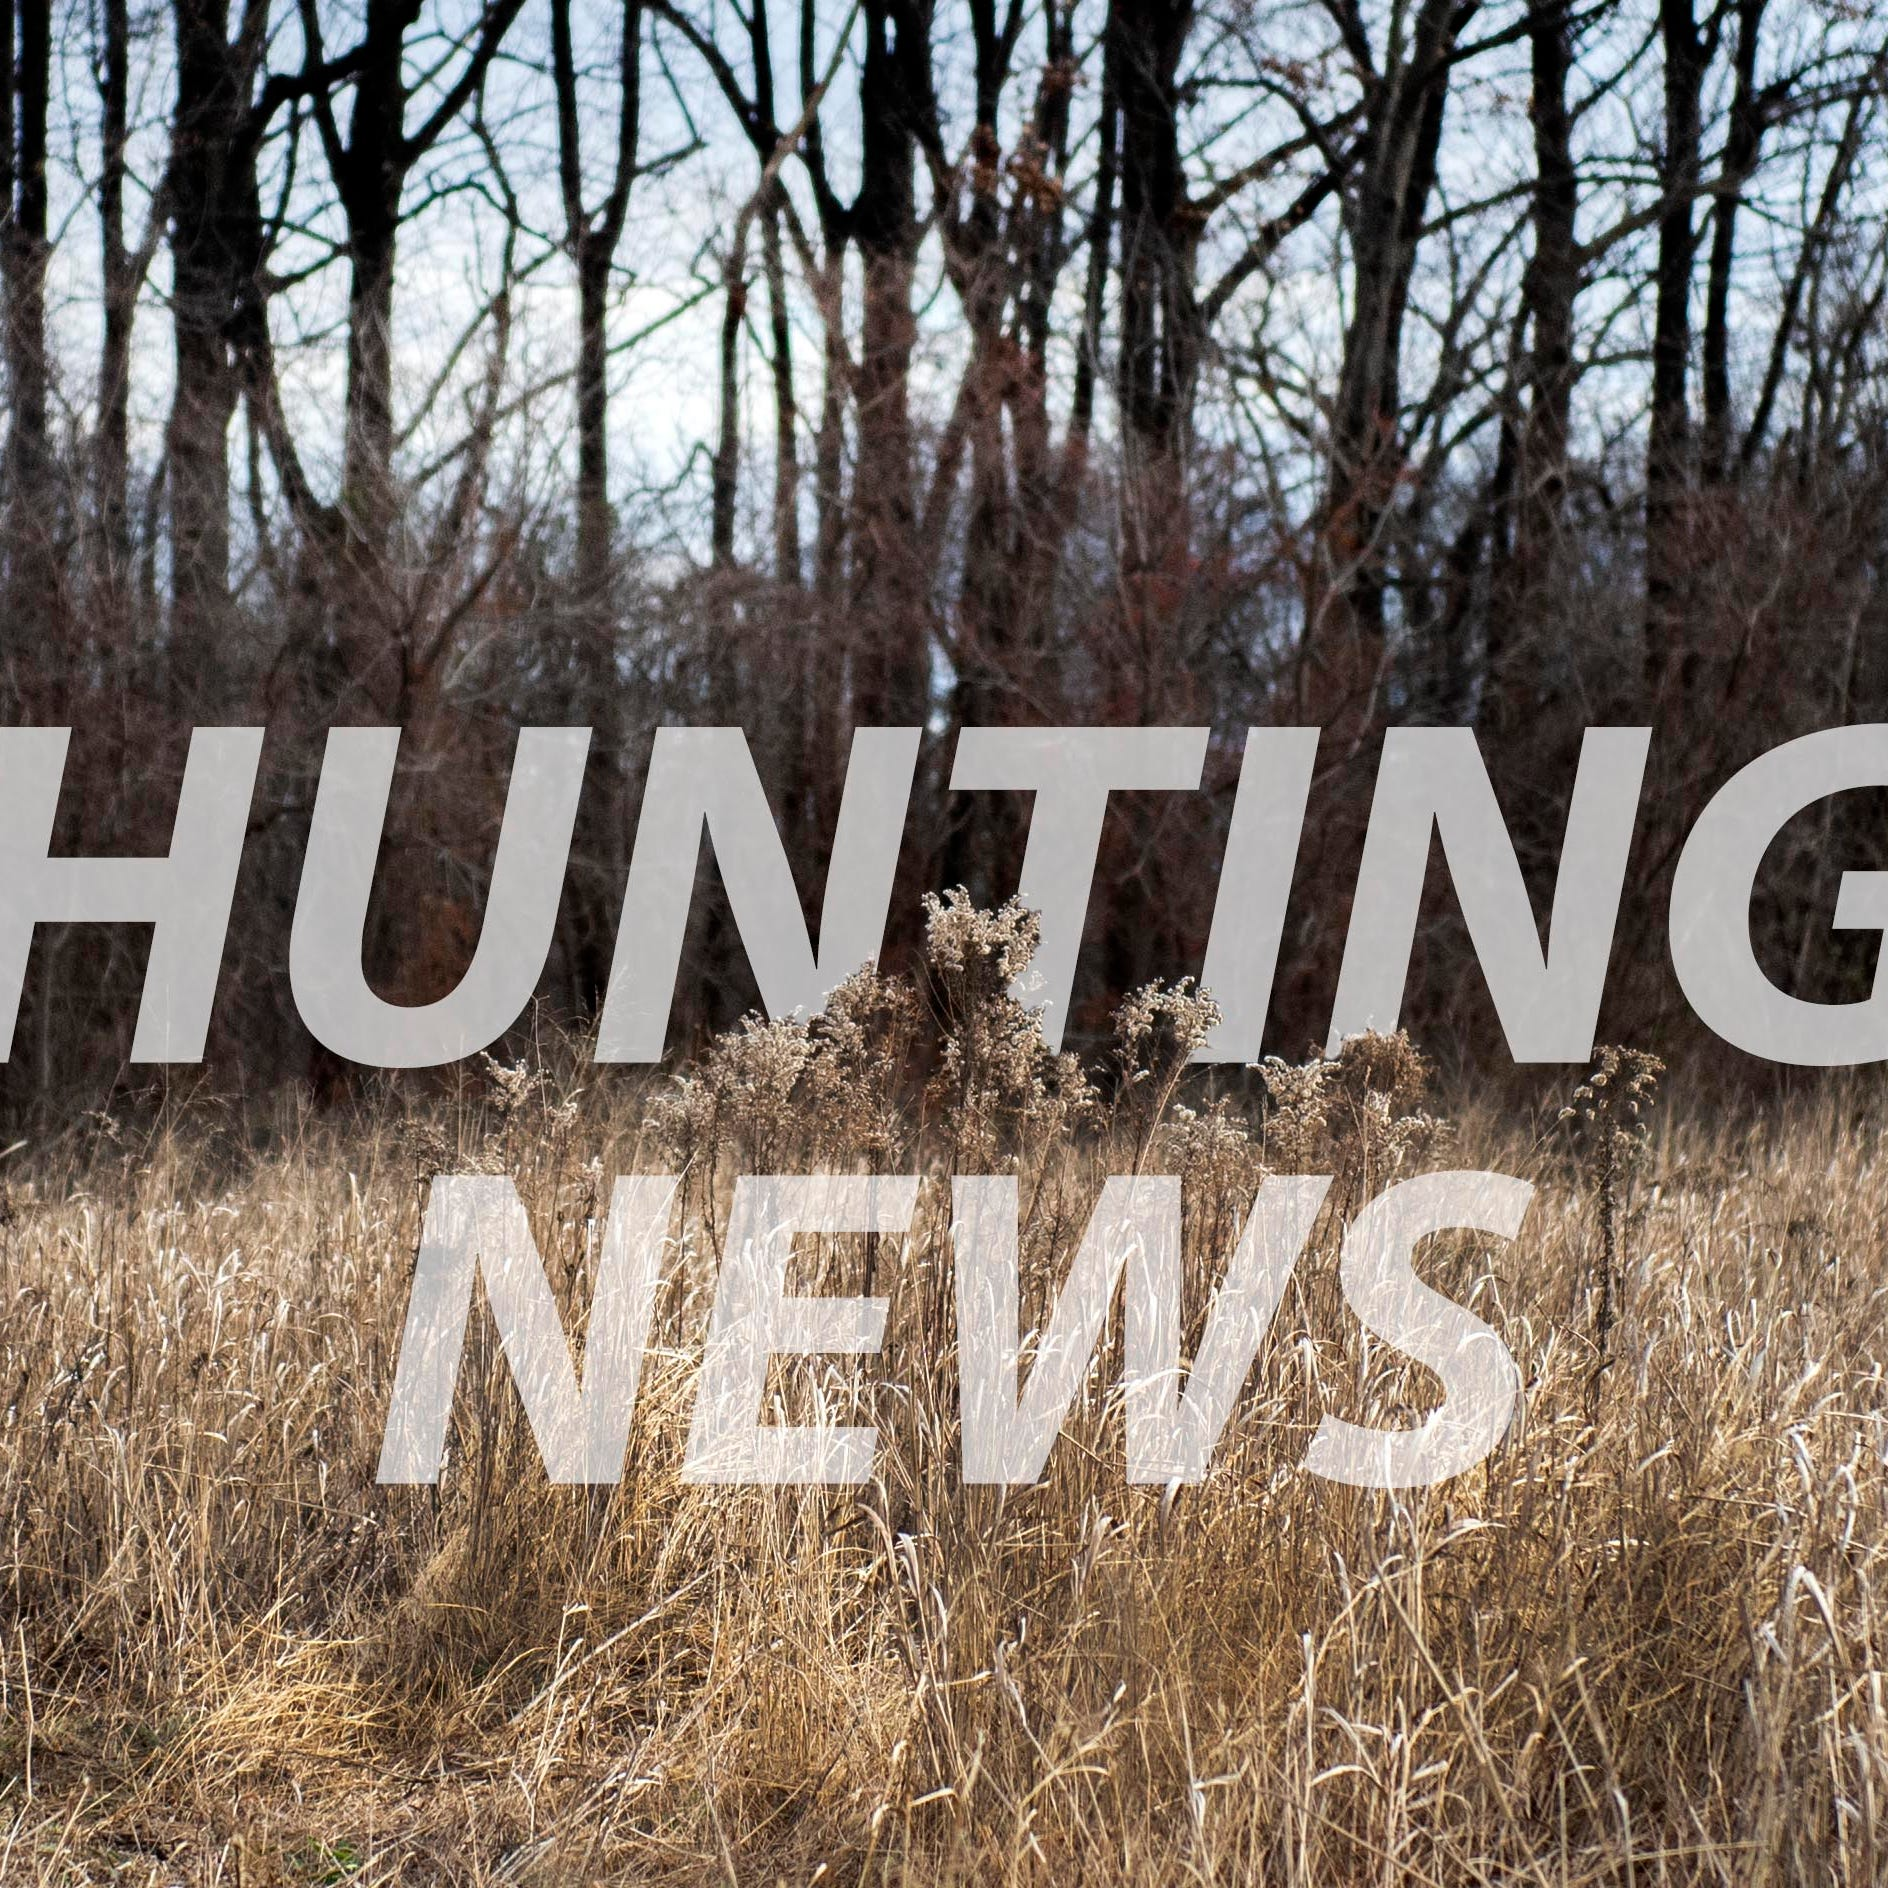 Pa. Game Commission to vote on moving opening day of rifle deer hunting season to Saturday